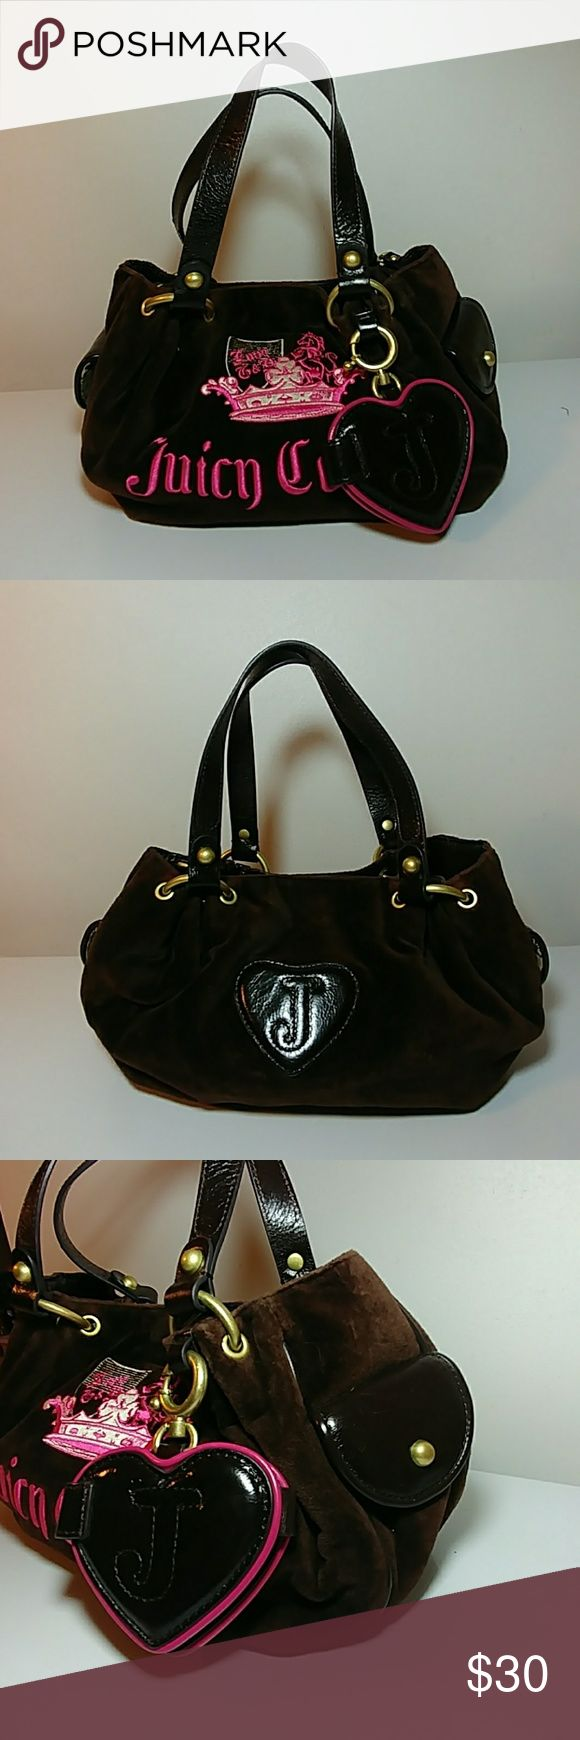 👜💖👜Beautiful JUICY COUTURE Handbag😍💖😜 Up for grabs is this fantastic Juicy Couture Brown velvet handbag. This handbag is in excellent preowned condition. It has a charm in the shape of a heart which is a mirror hanging from the side. Check out my closet for more women's handbags. Thanks for looking. Juicy Couture Bags Shoulder Bags